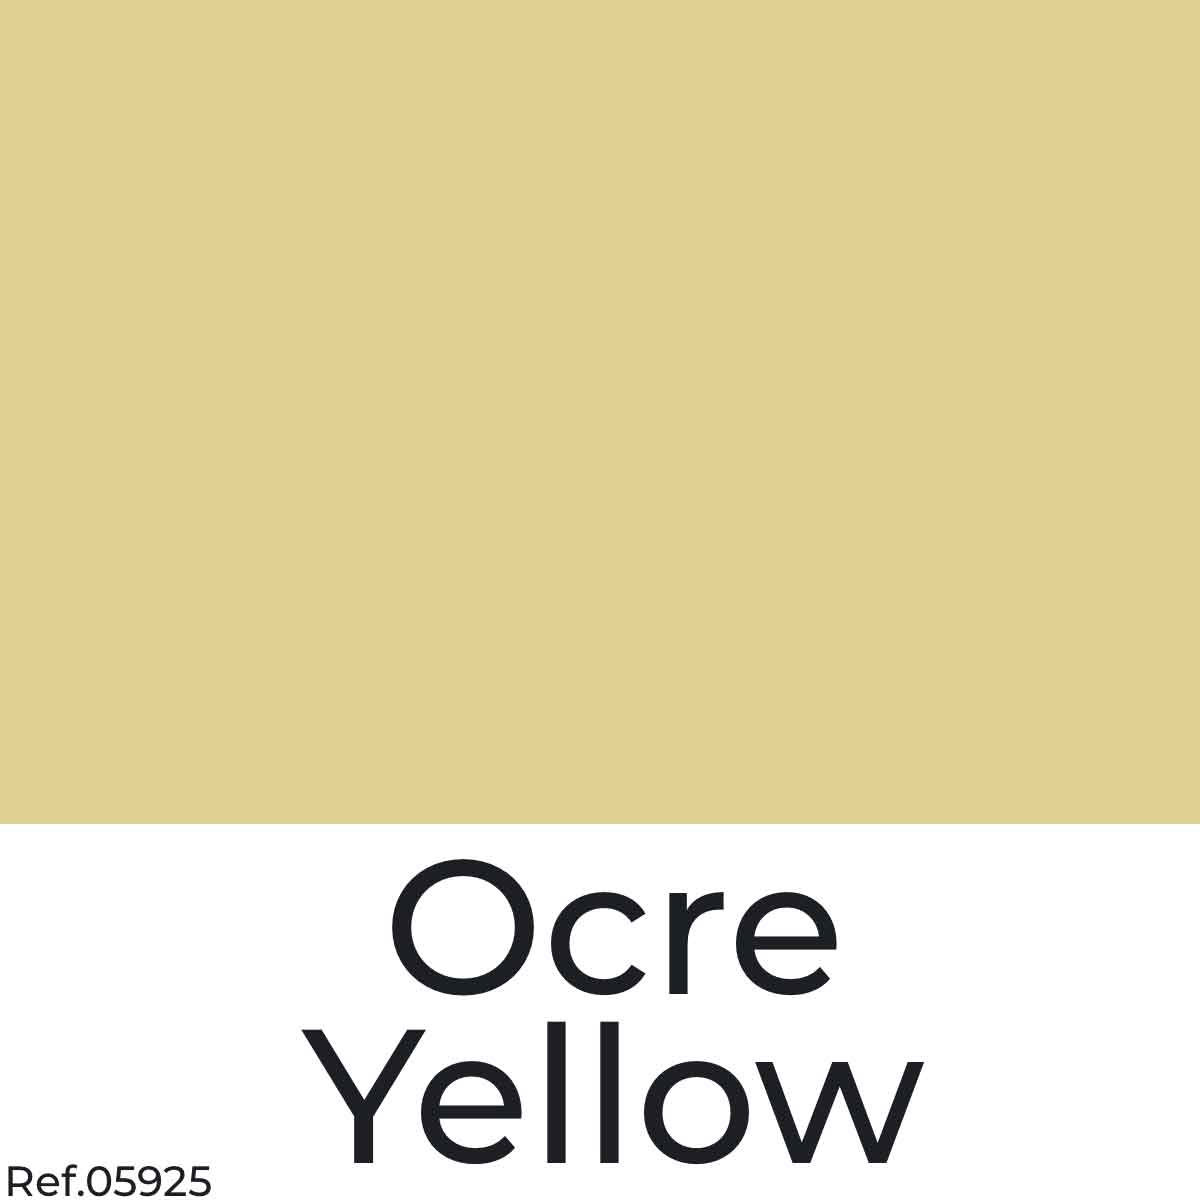 Ocre Yellow Color Poster Paper from najamonline.com Abu Dhabi - UAE